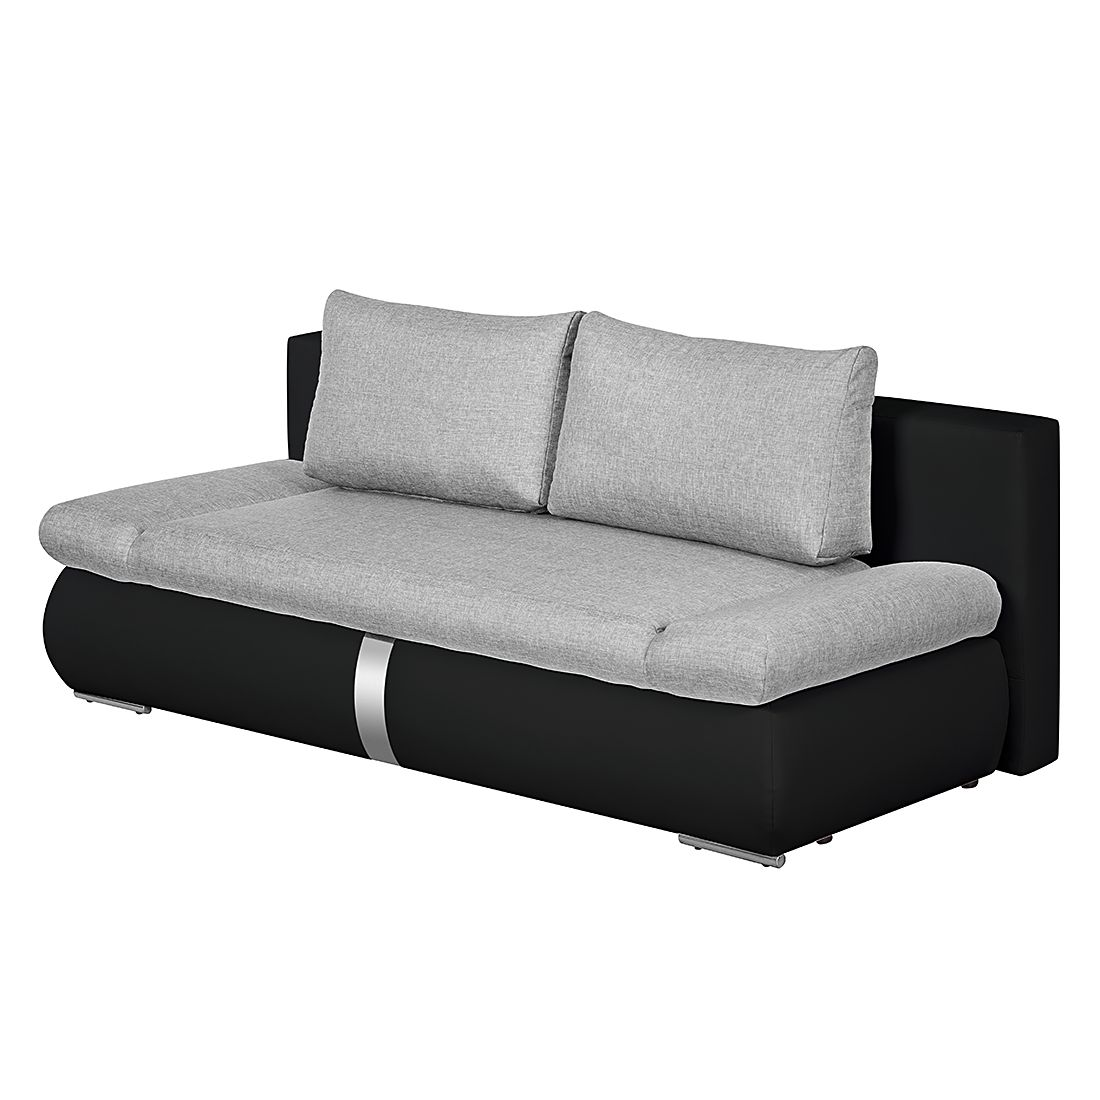 schlafsofa girard ii mit chromleiste kunstleder webstoff schwarz grau roomscape jetzt kaufen. Black Bedroom Furniture Sets. Home Design Ideas